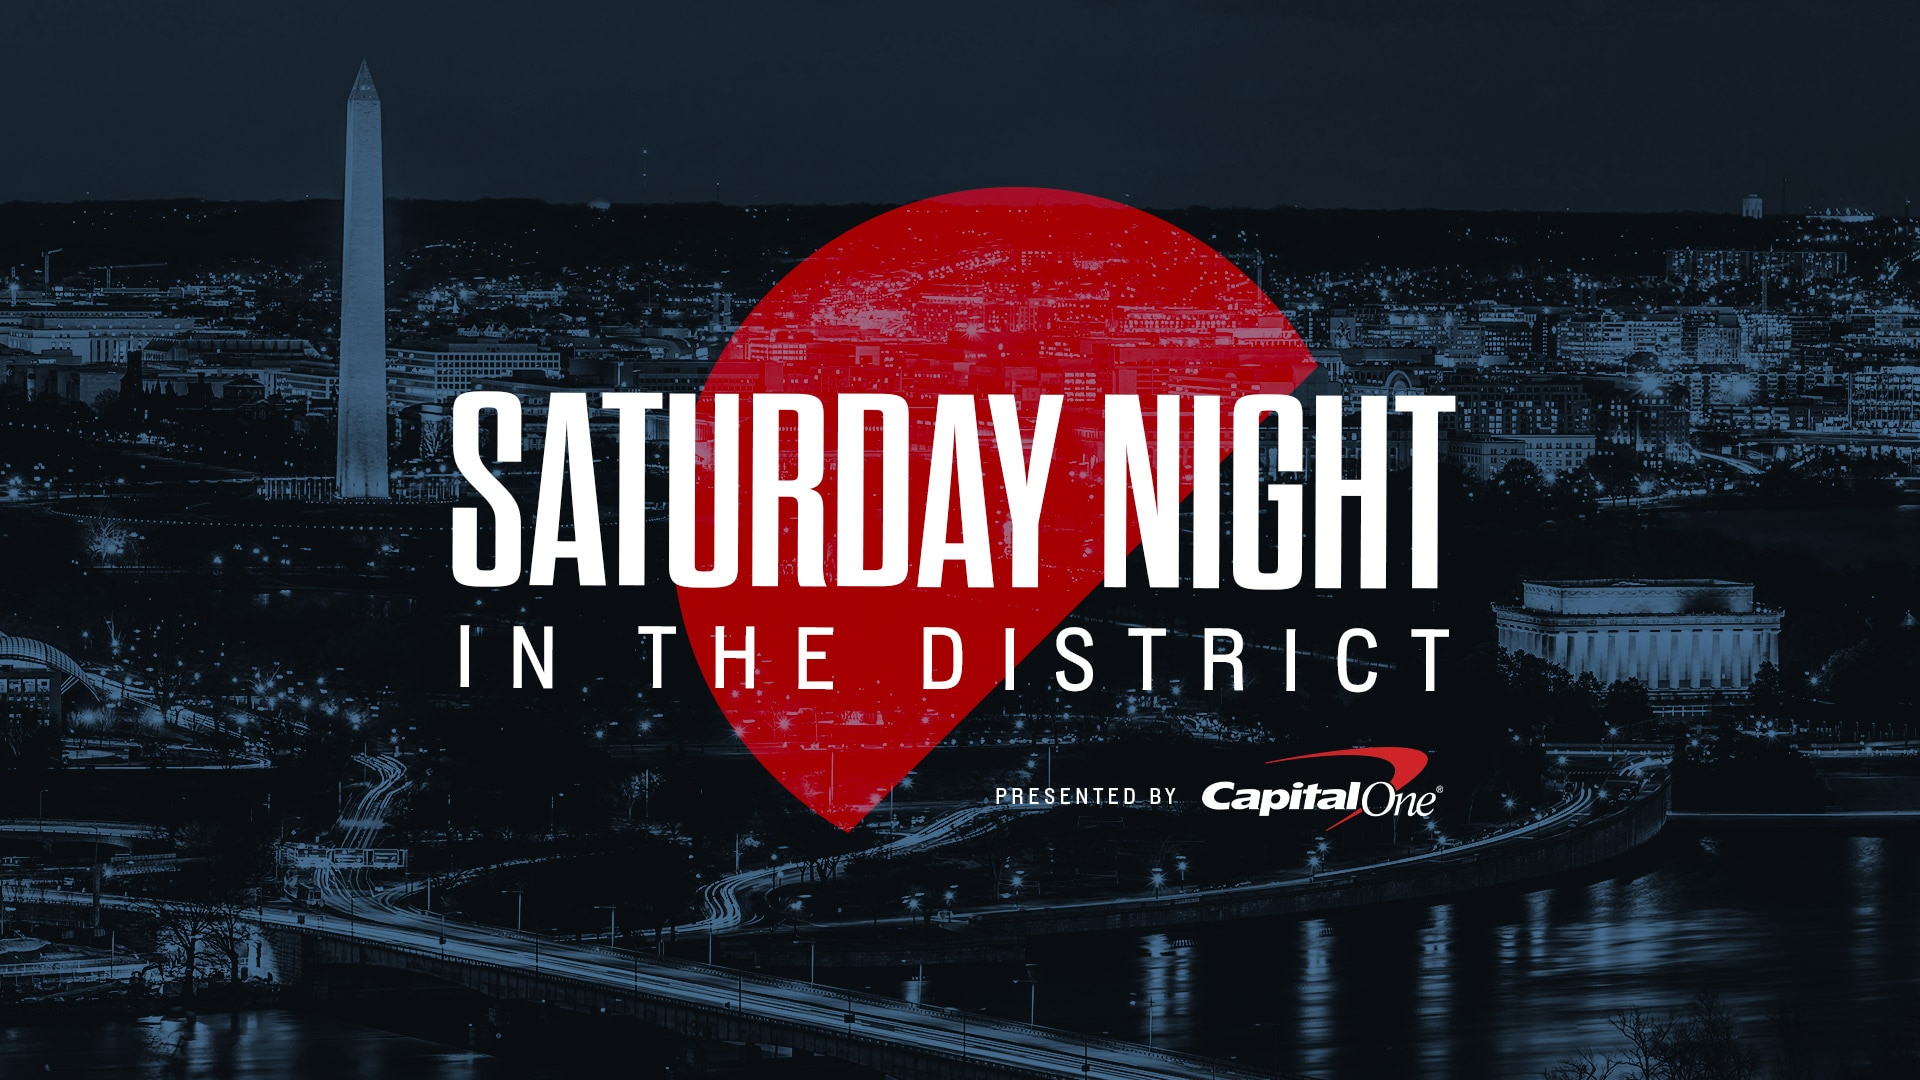 Saturday Night in the District Presented by Capital One